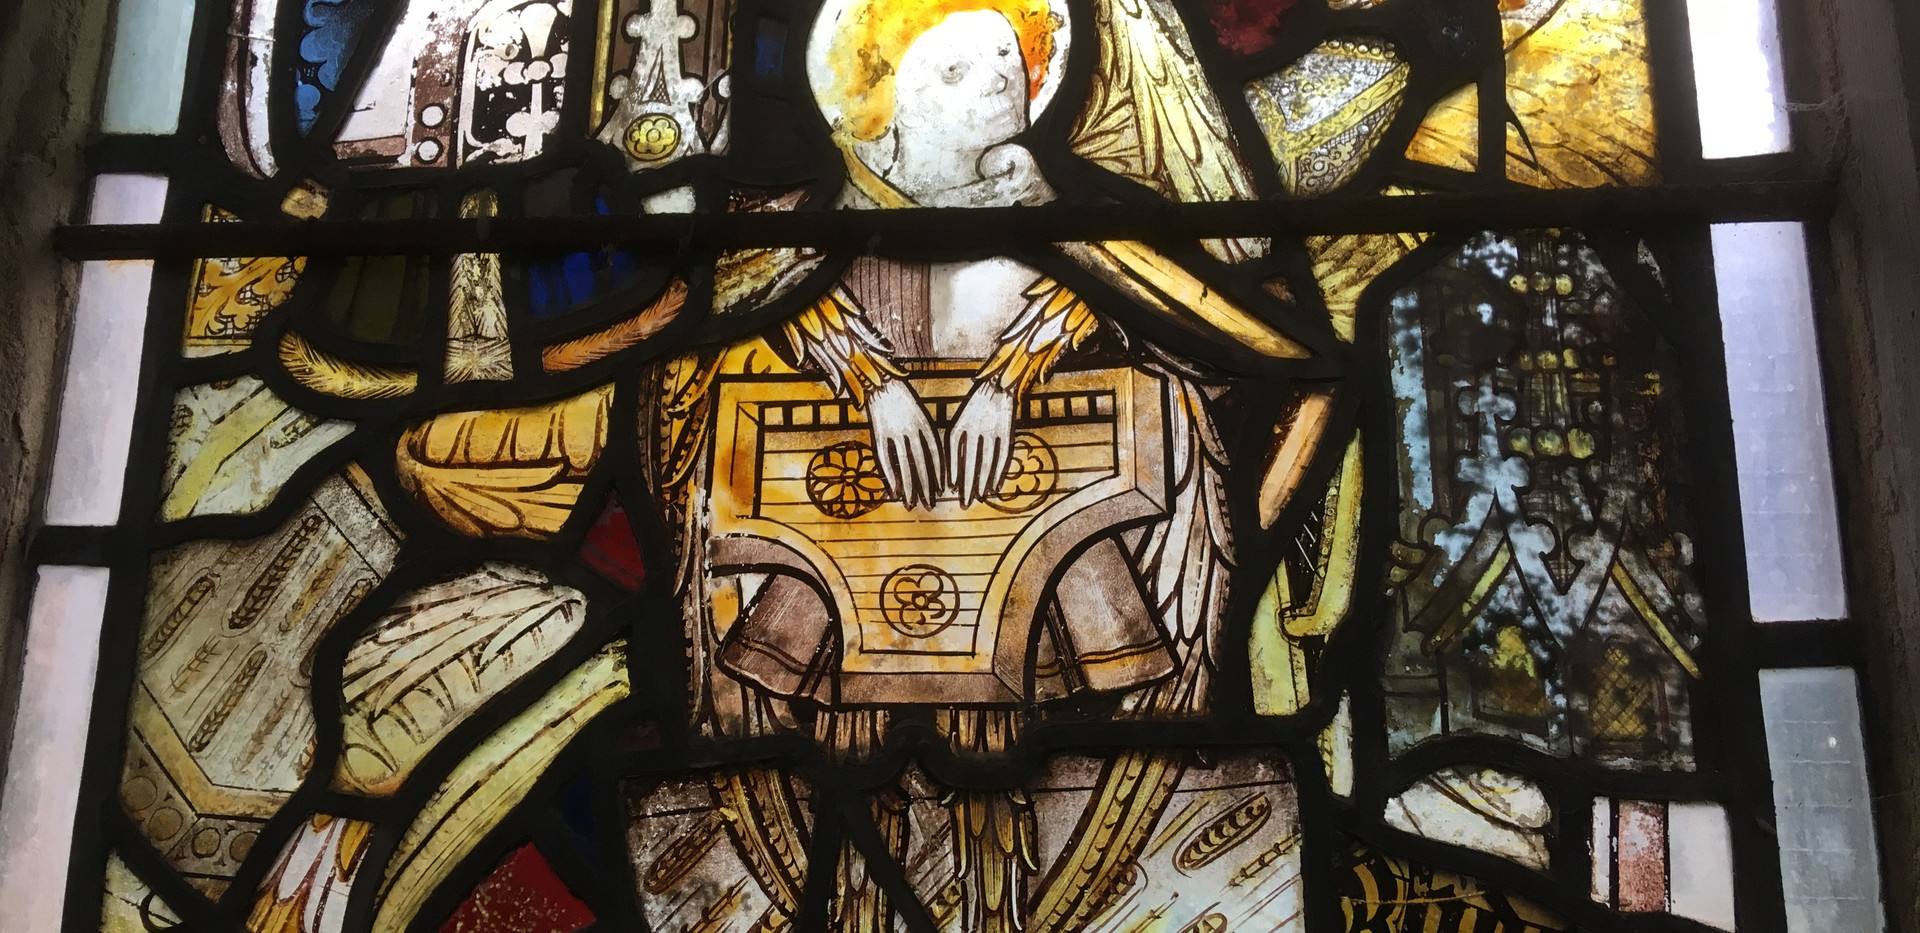 Cawston church has an absolutely wonderful window made anew from broken medieval glass; the original clearly featured a wonderful array of musicians. The detail is incredible, as seen in this psaltery player - somewhat atypically playing with fingers rather than a plectrum.